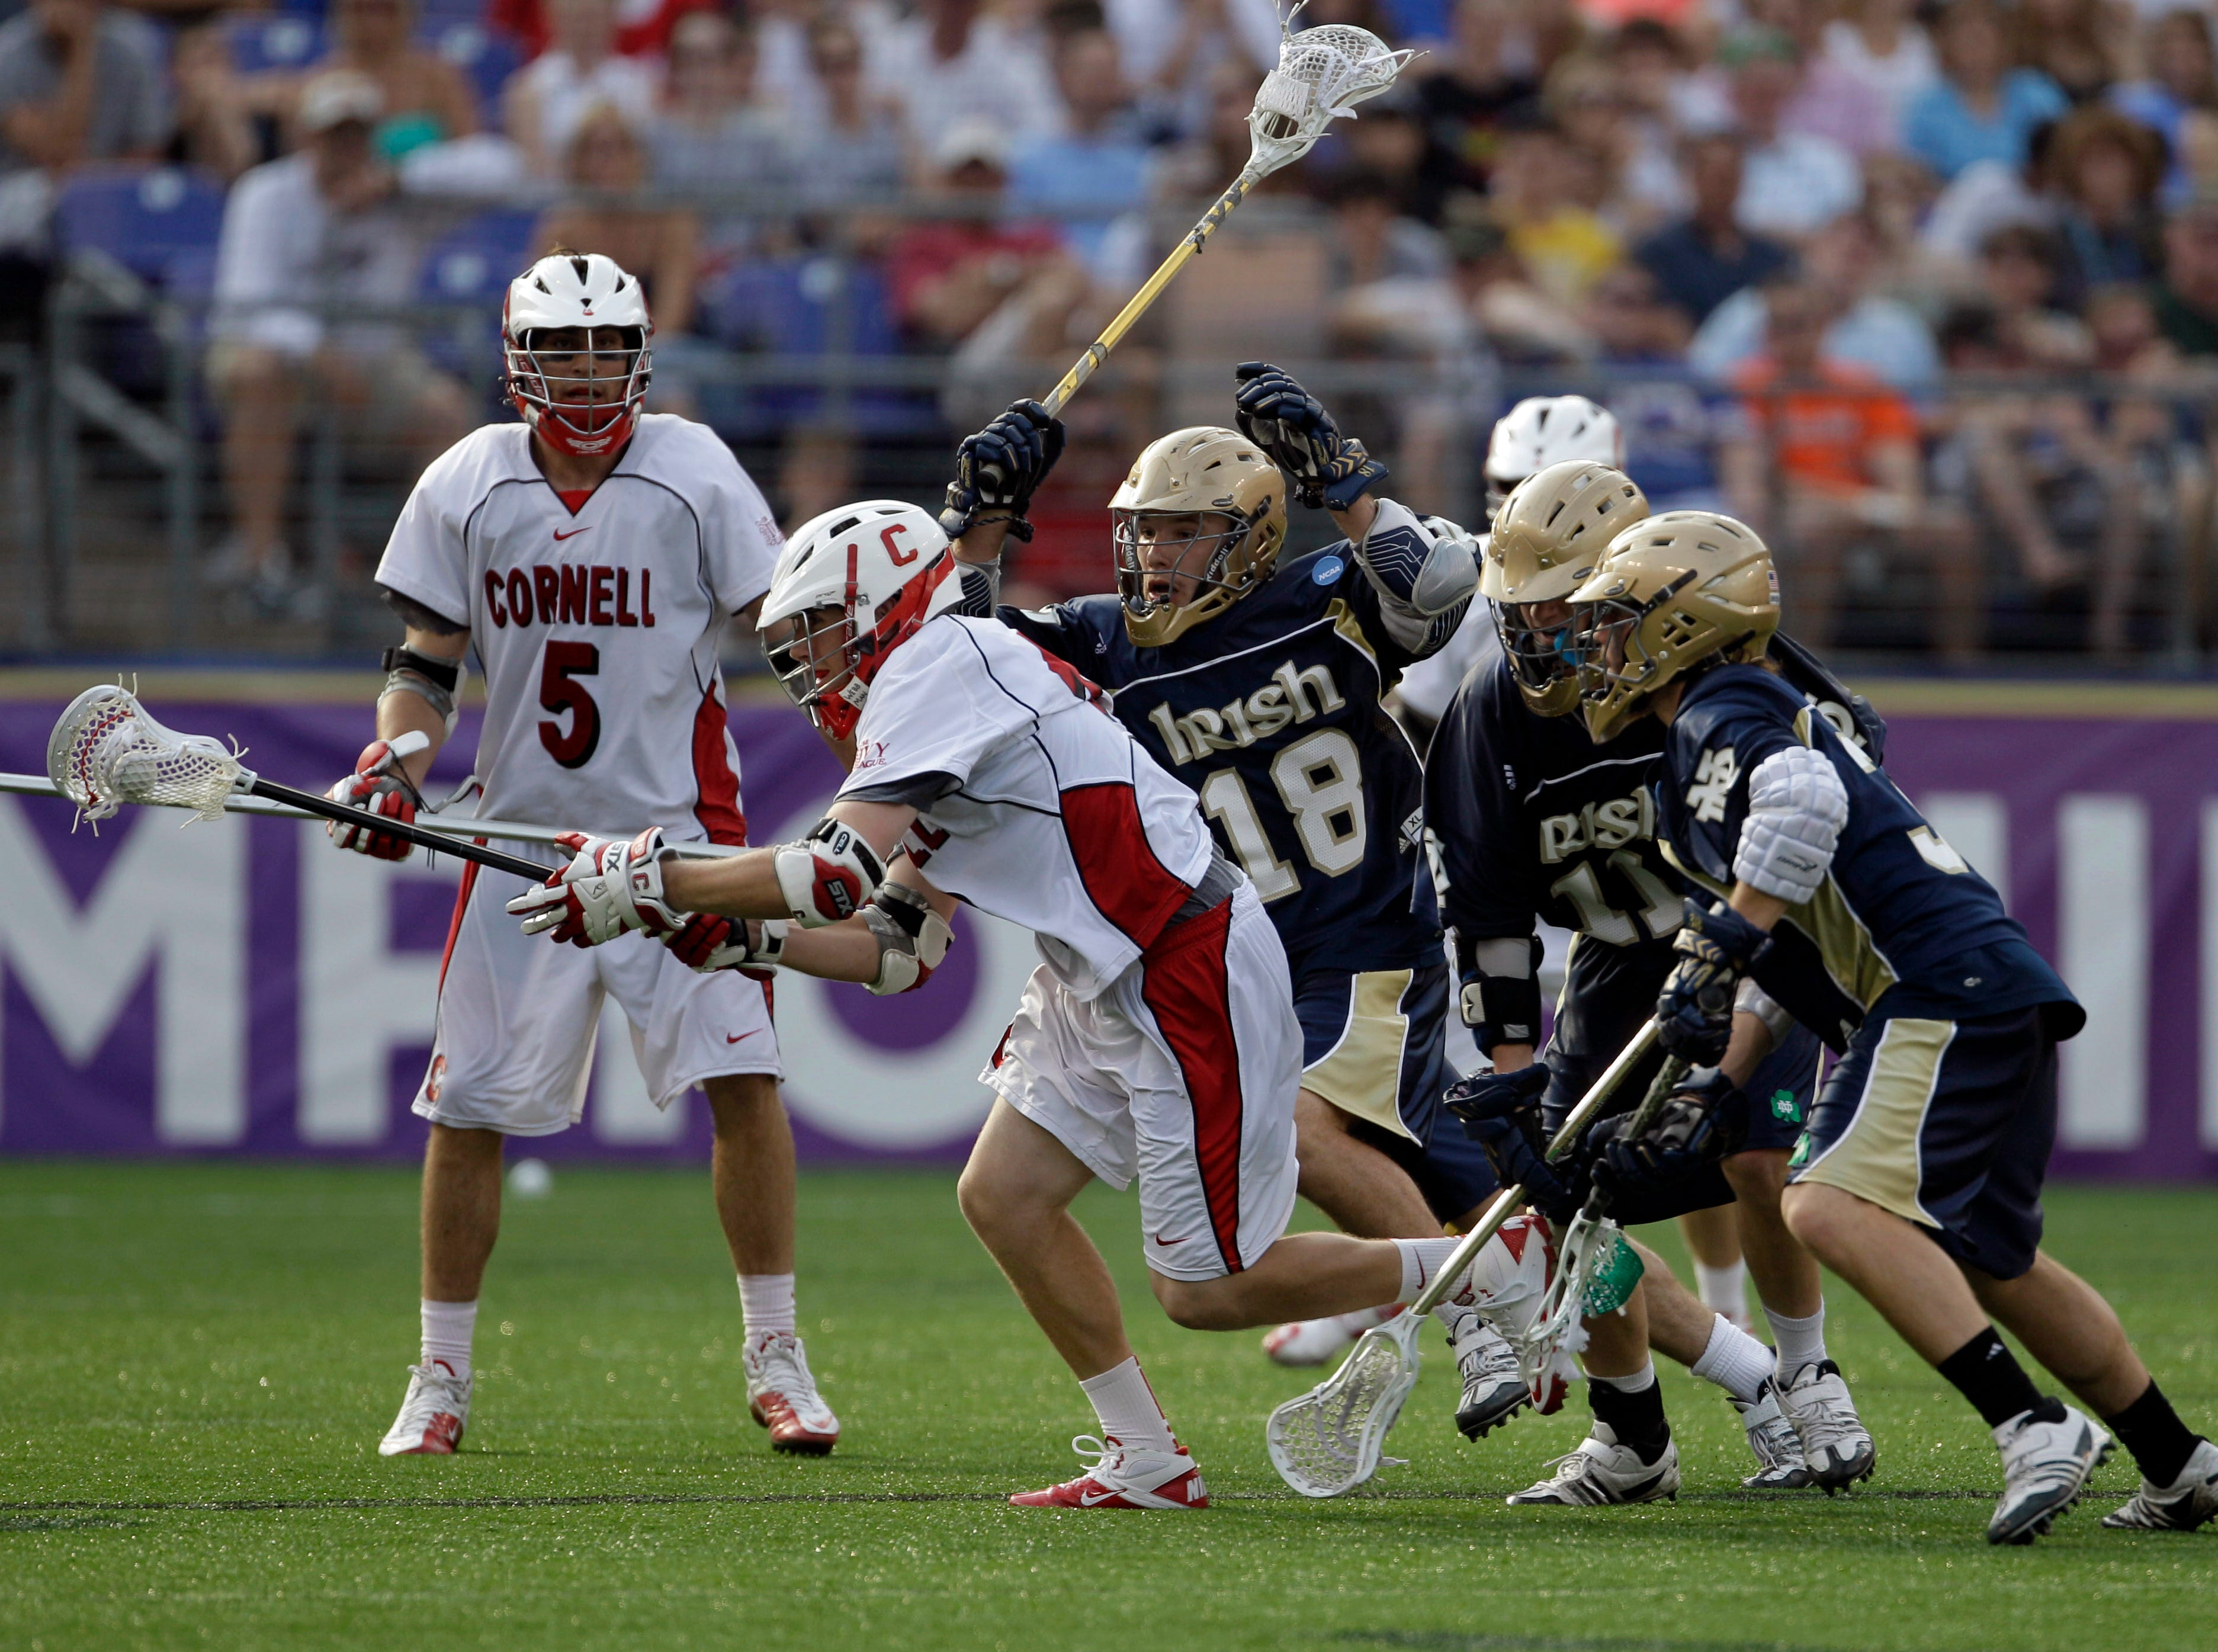 Cornell's Andrew MacDonald is defended Notre Dame players Sean Rogers, (18) Neal Hicks, middle, and Nicholas Beattie, right, during the second half of the NCAA Men's Final Four semifinal lacrosse game, Saturday, May 29, 2010, in Baltimore. Notre Dame won 12-7. At left is Cornell's Pierce Derkac.